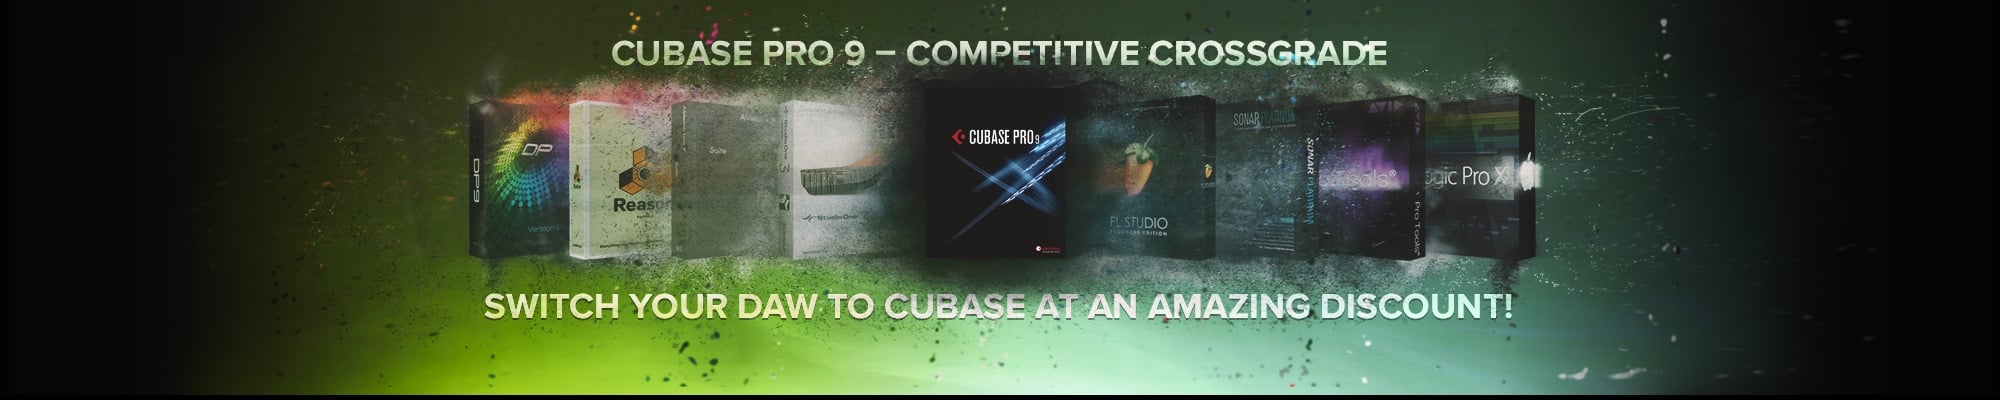 Cubase Pro 9 – Competitive Crossgrade